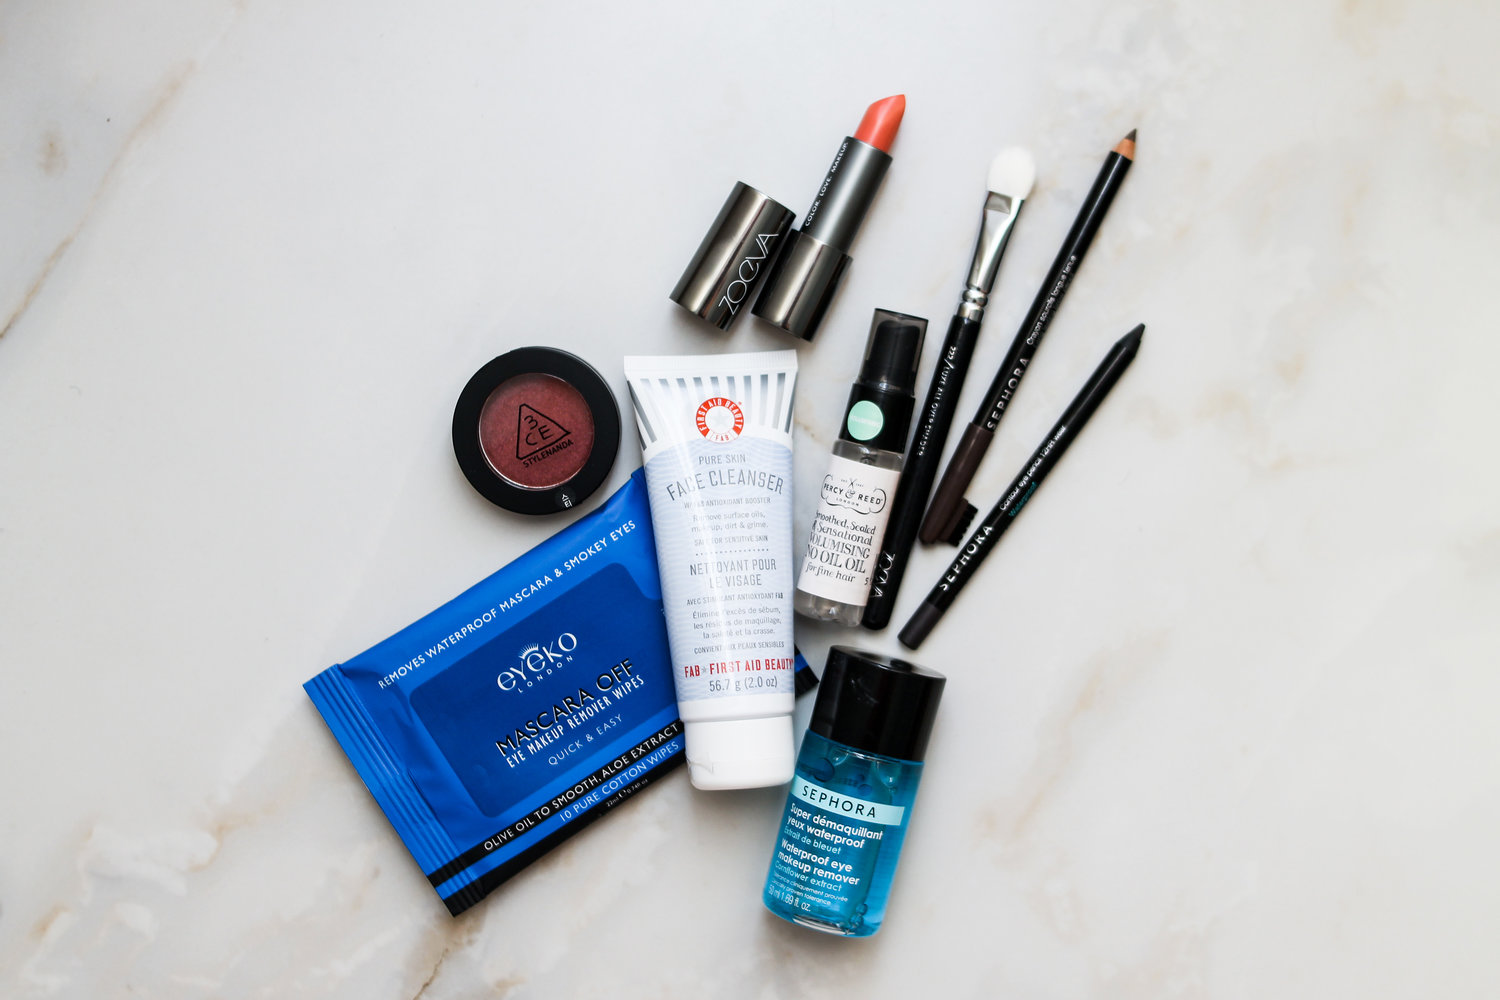 Budget Beauty: 10 Awesome Finds from Sephora Under P600 (Seriously